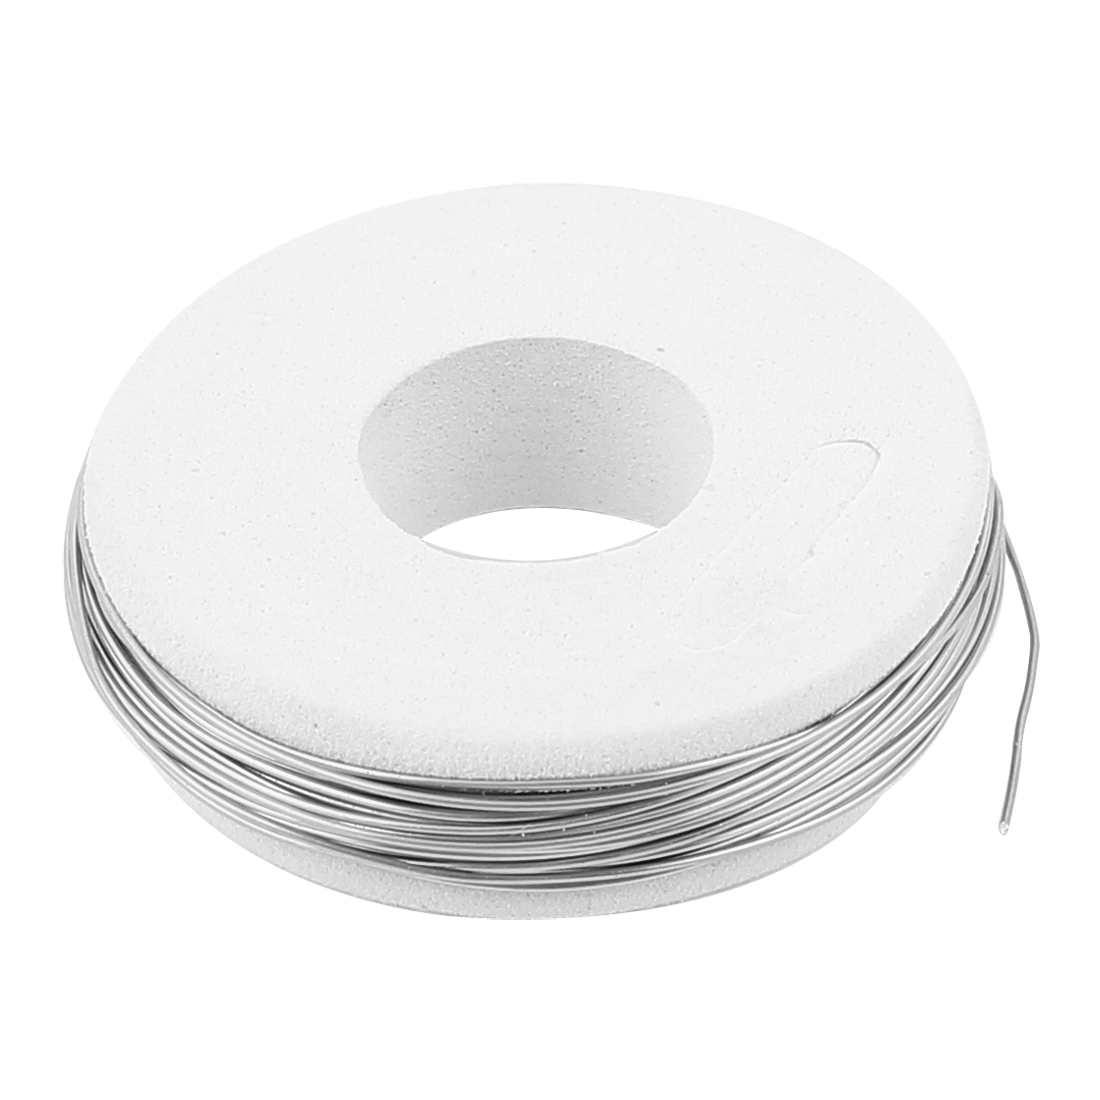 Uxcell Nichrome 80 Round Heater Wire 0.5Mm 24 Gauge Awg 24.6Ft Heating Element Length . | 750cm 0 8mm nichrome resistance heating wire nickel chrome 80 20 various diameter and length